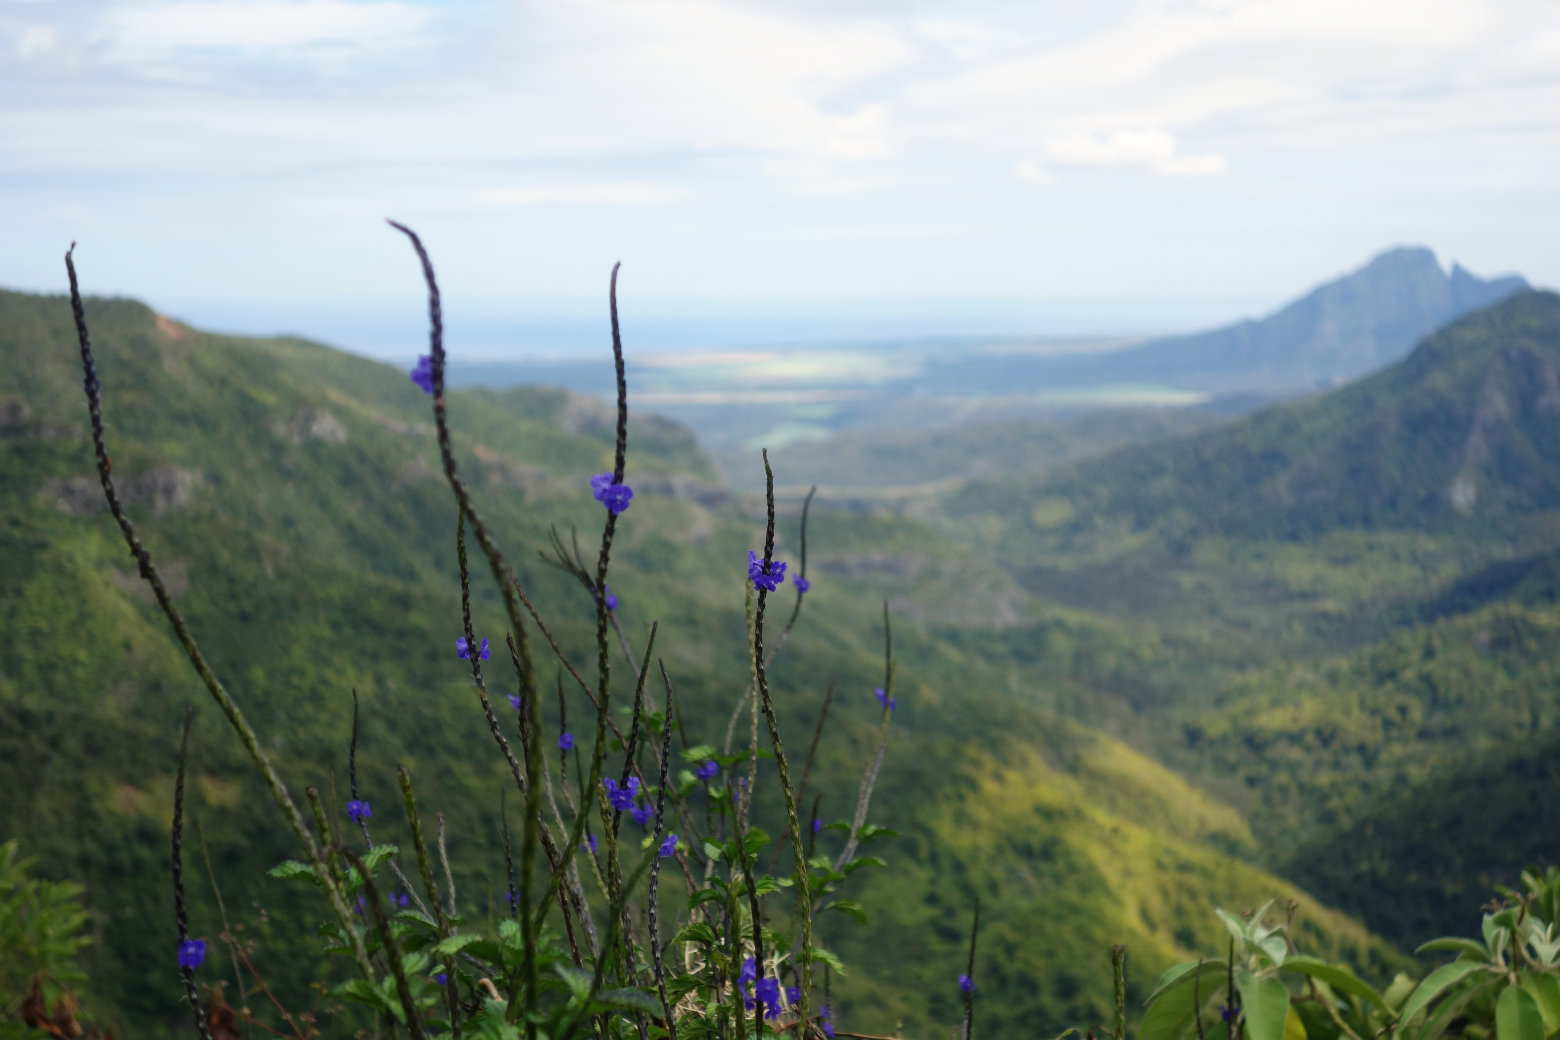 Mauritius Black River Gorges Viewpoint